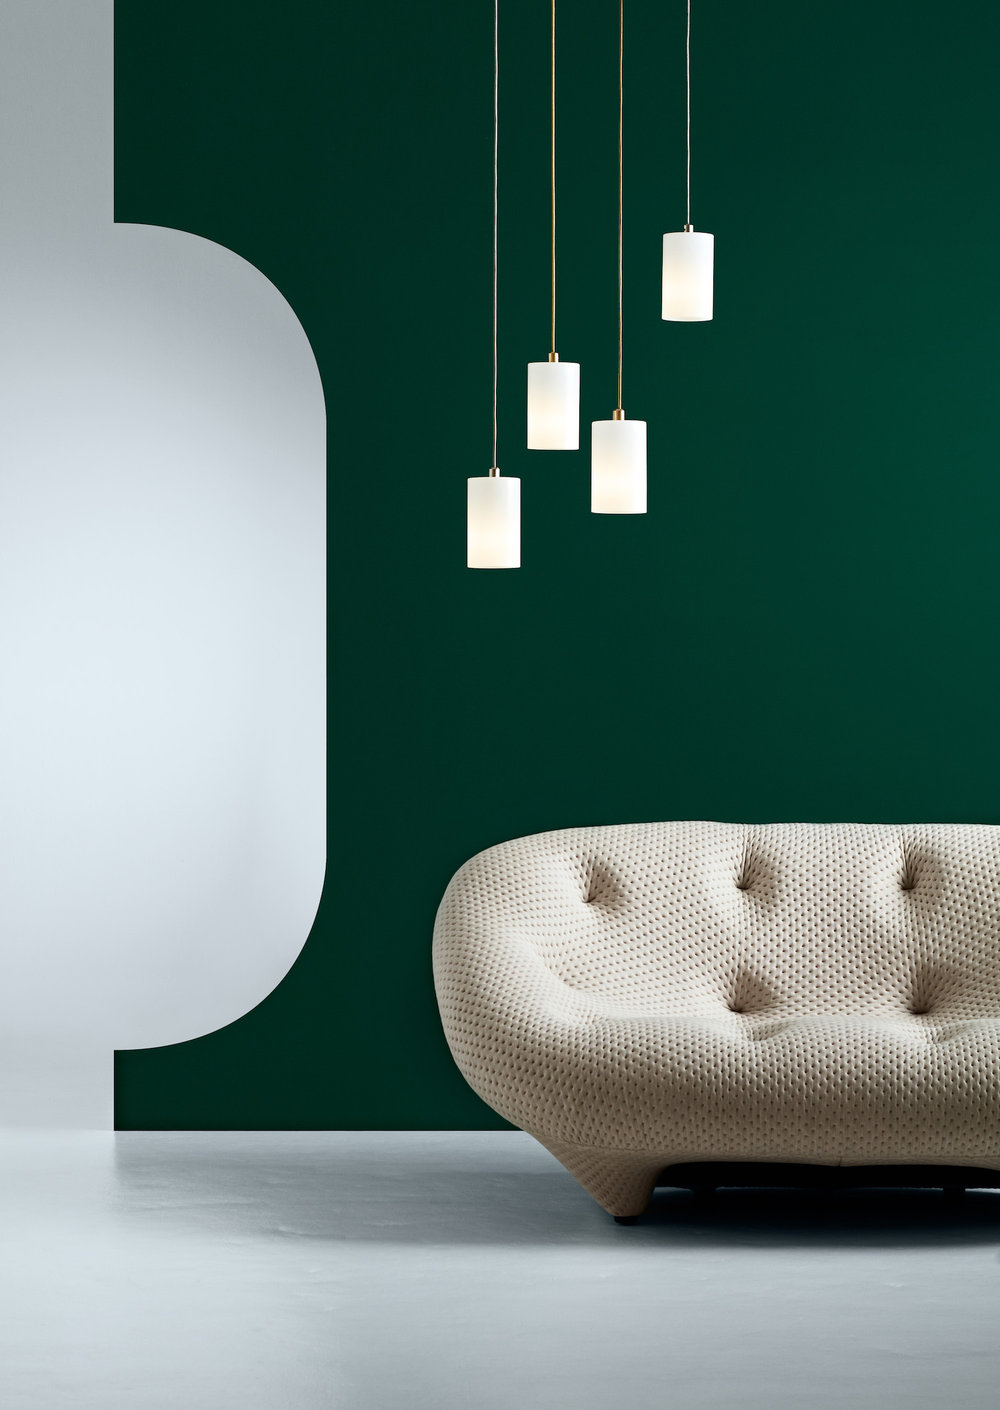 ISM Objects_Bud 200_Family Pendant_Photo credit Mike Baker, Styling Heather Nette King_Lifestyle 03 2.jpg